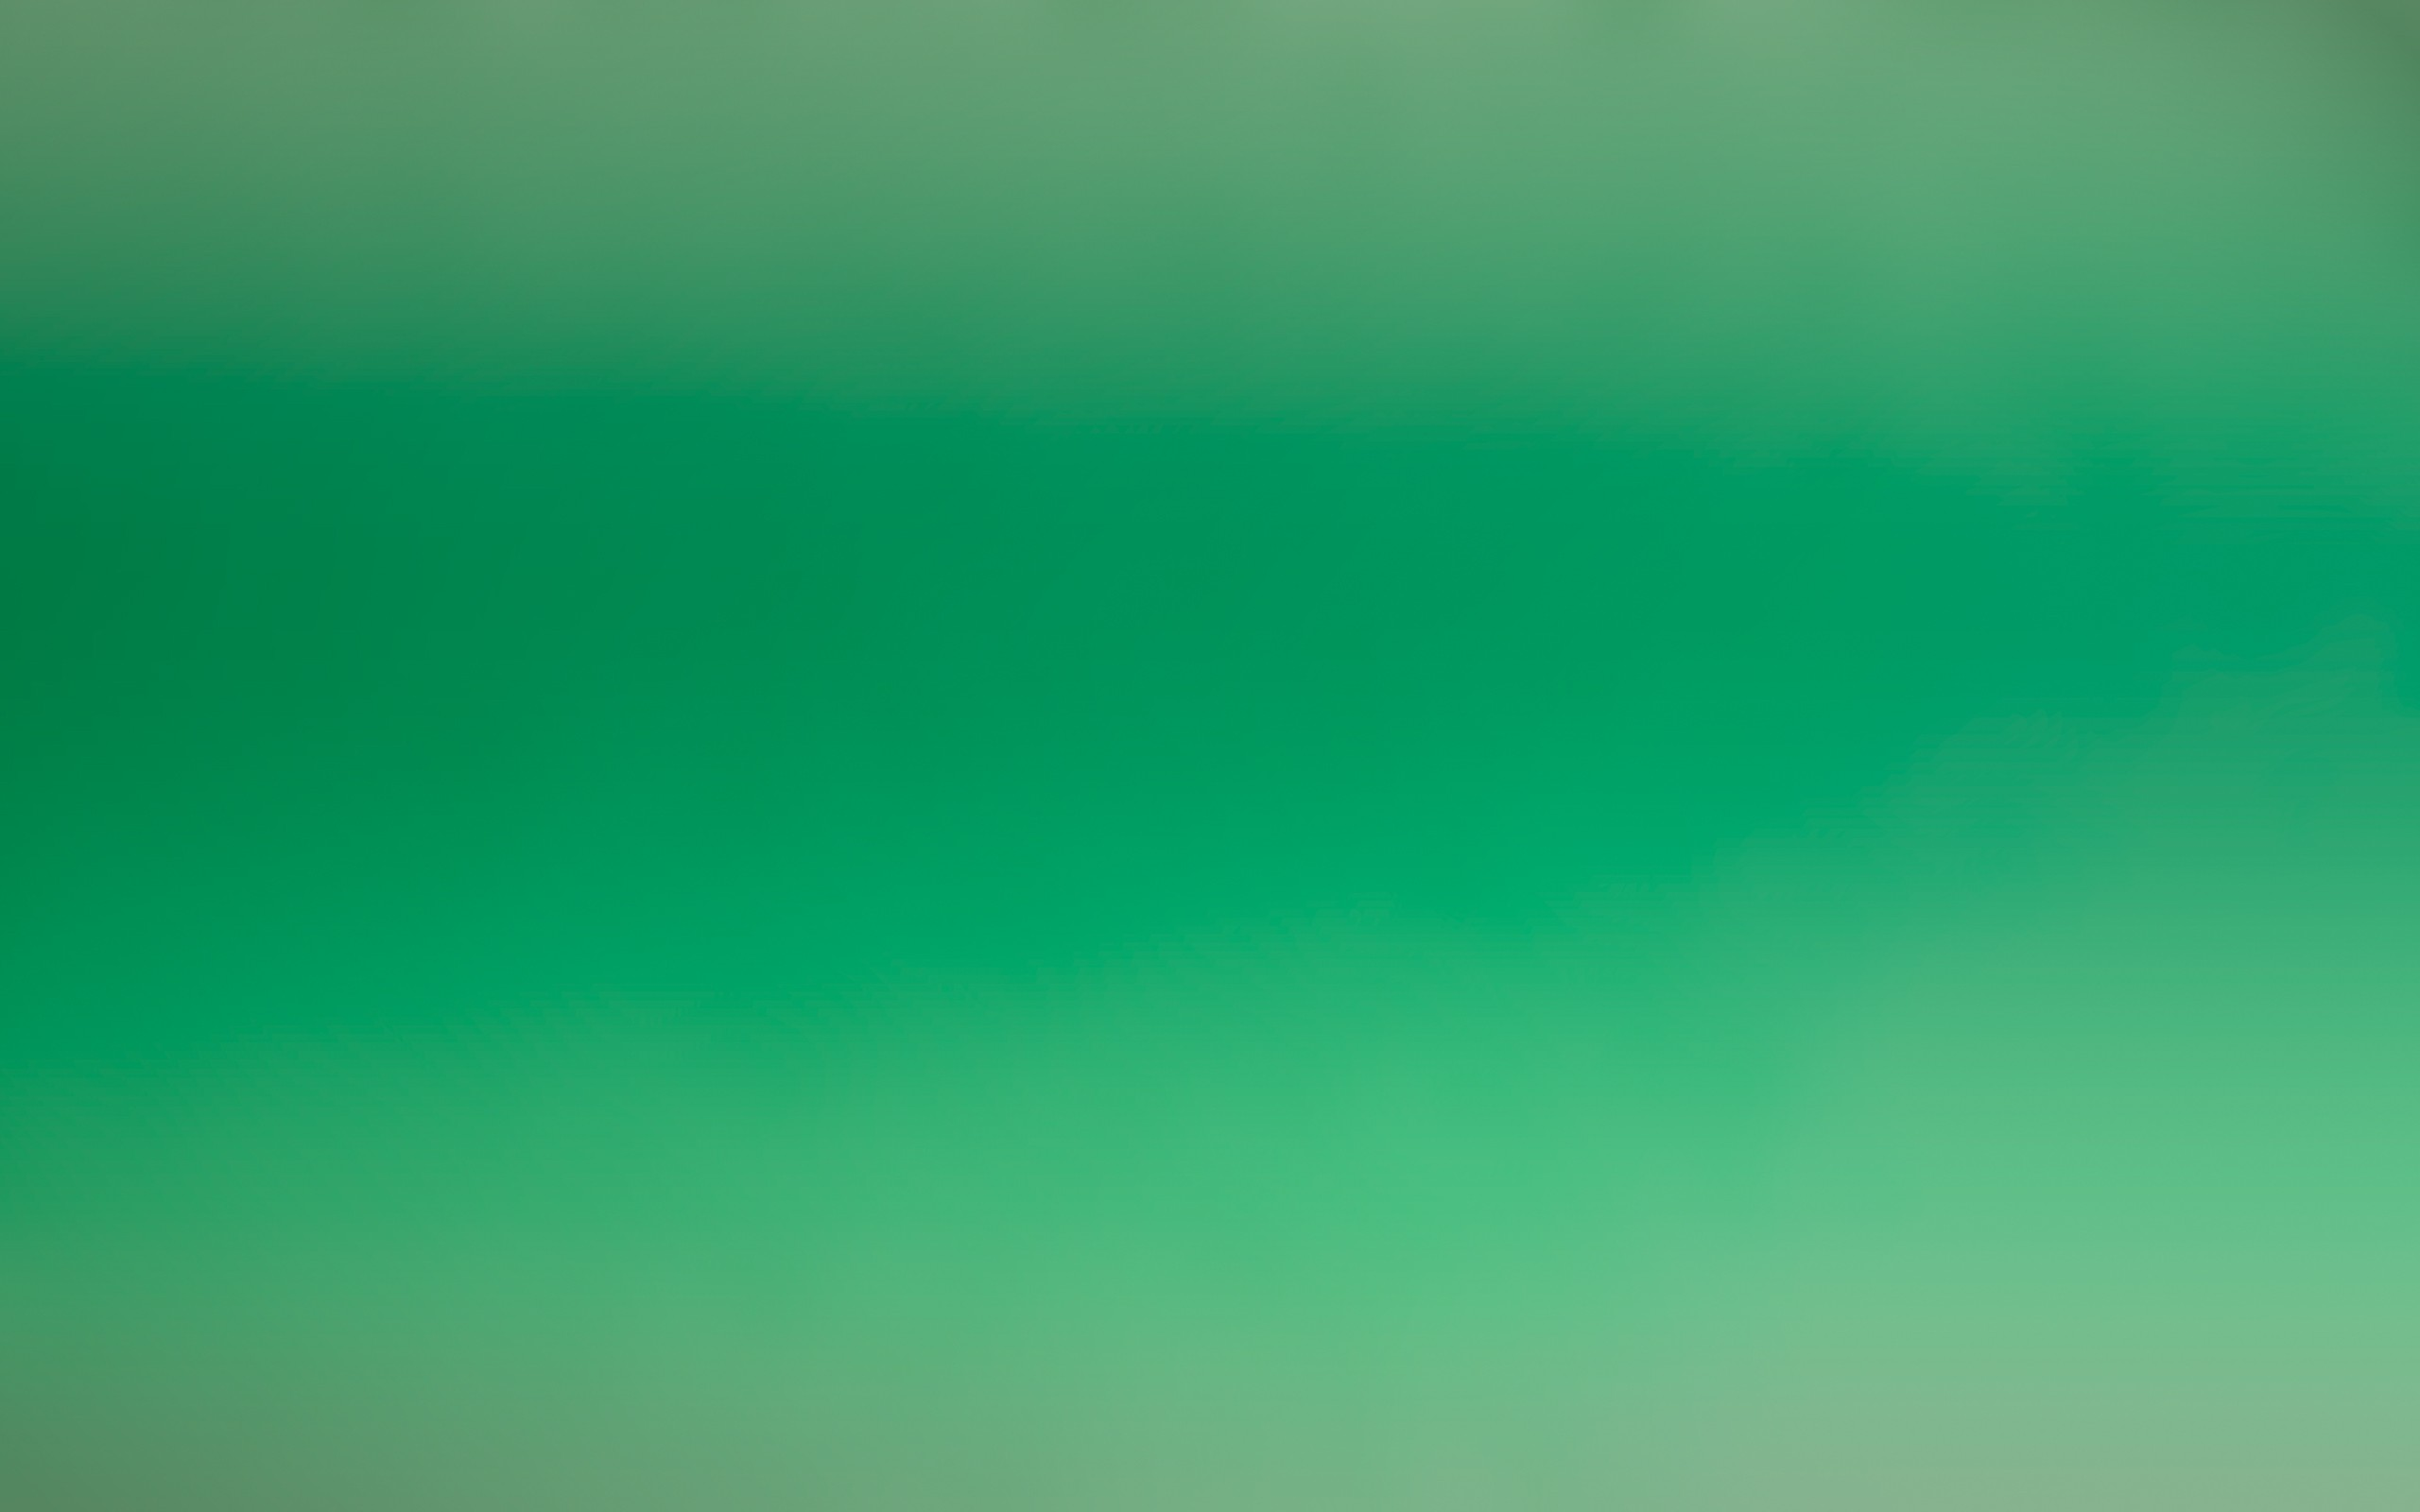 Fondo Color Verde Hd 2560x1600